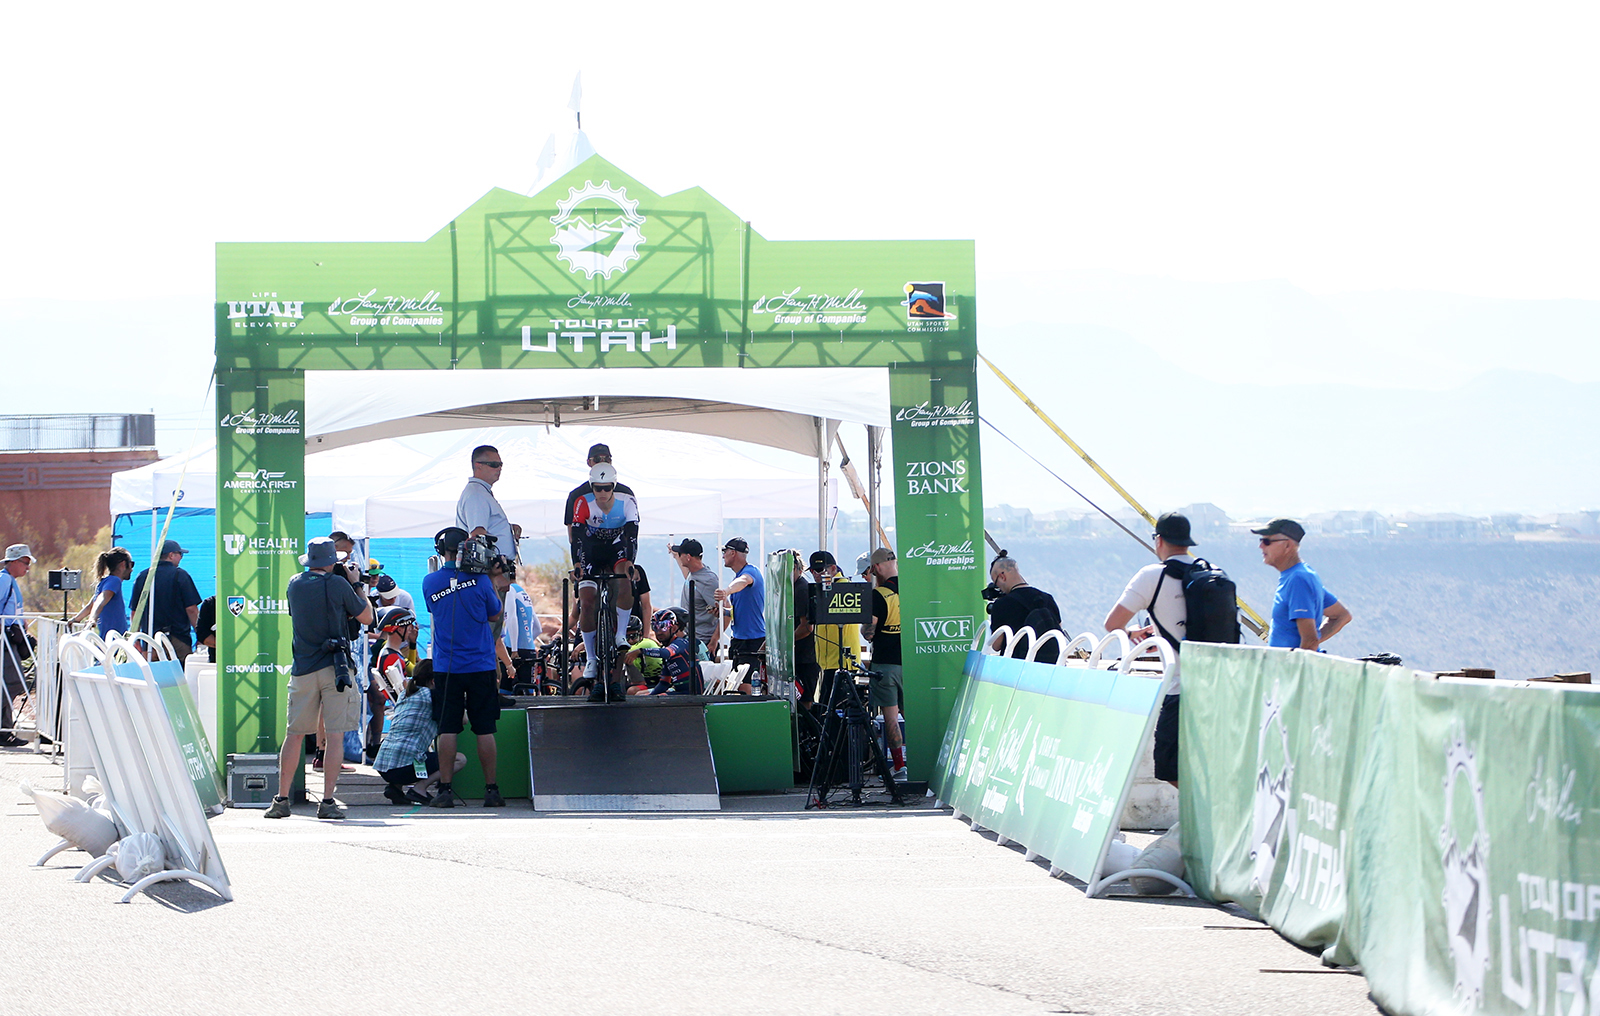 Start house. 2018 Tour of Utah Team Prologue, August 6, 2018, St. George, Utah. Photo by Cathy Fegan-Kim, cottonsoxphotography.net